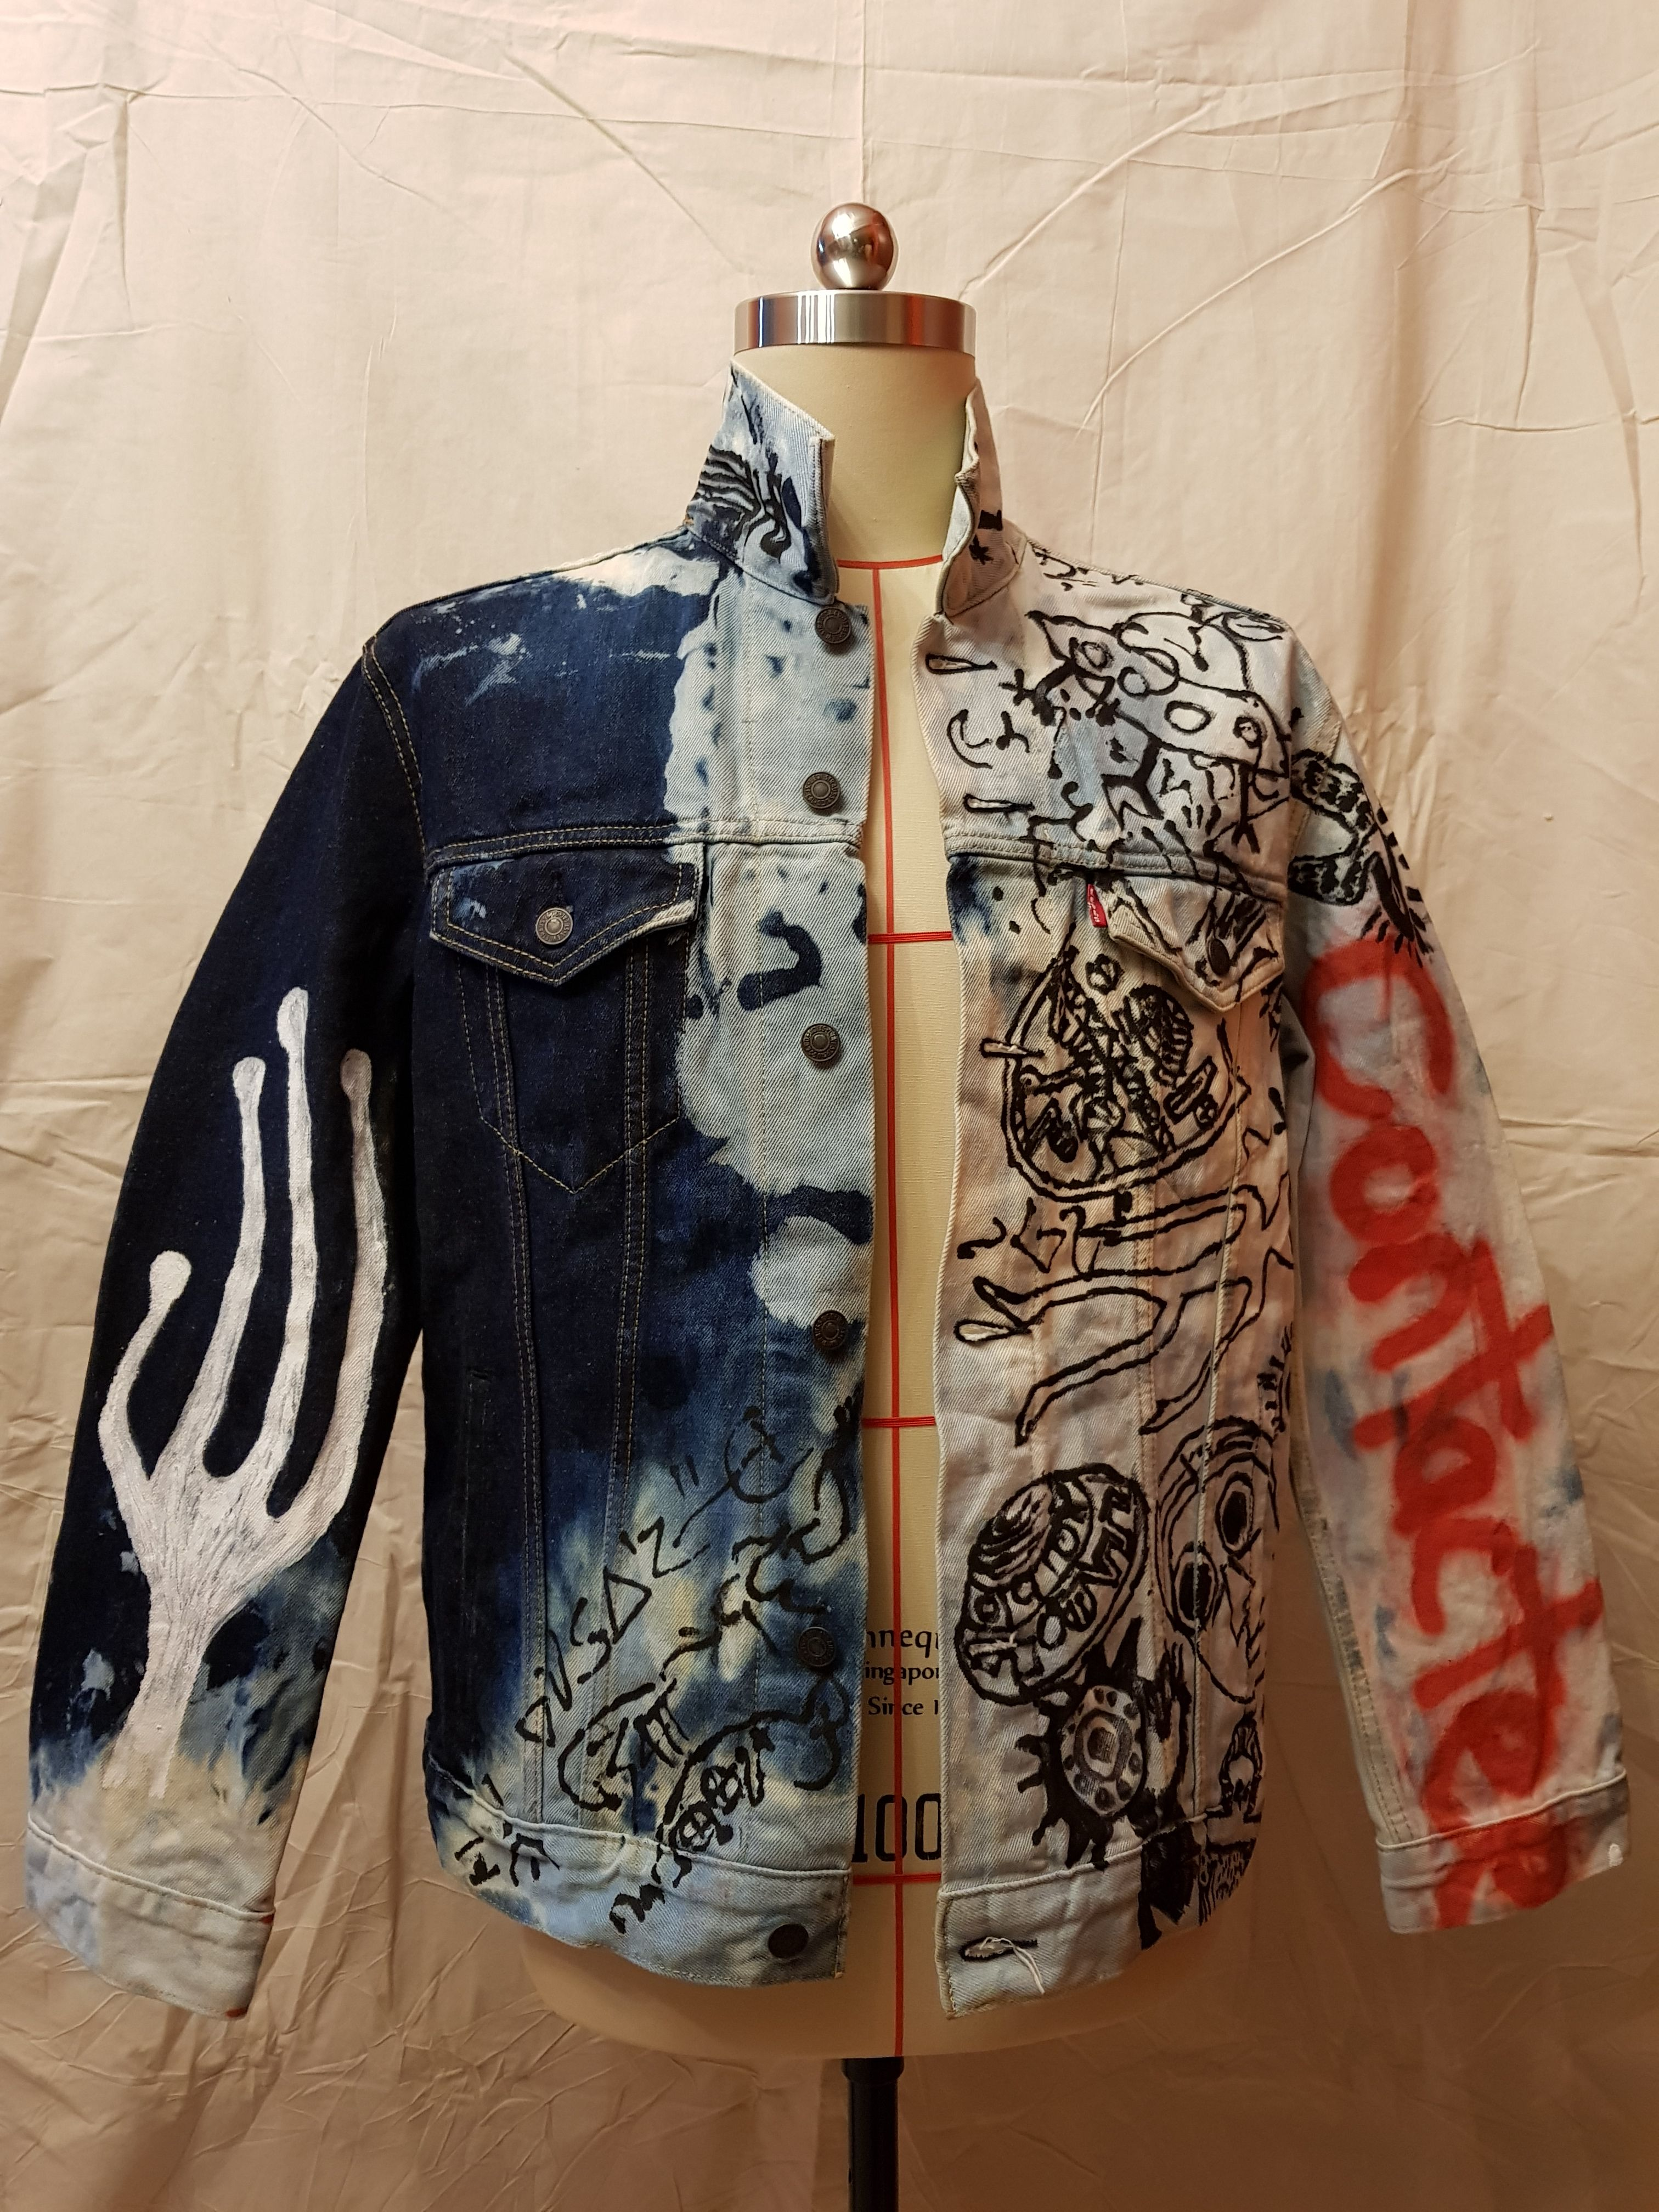 For Sale Ancient Alien Inspired Jacket Cross Bleached Jacket With Spray And Acrylic Paint We Make One Piec Denim Fashion Diy Fashion Clothing Painted Jacket [ 4032 x 3024 Pixel ]